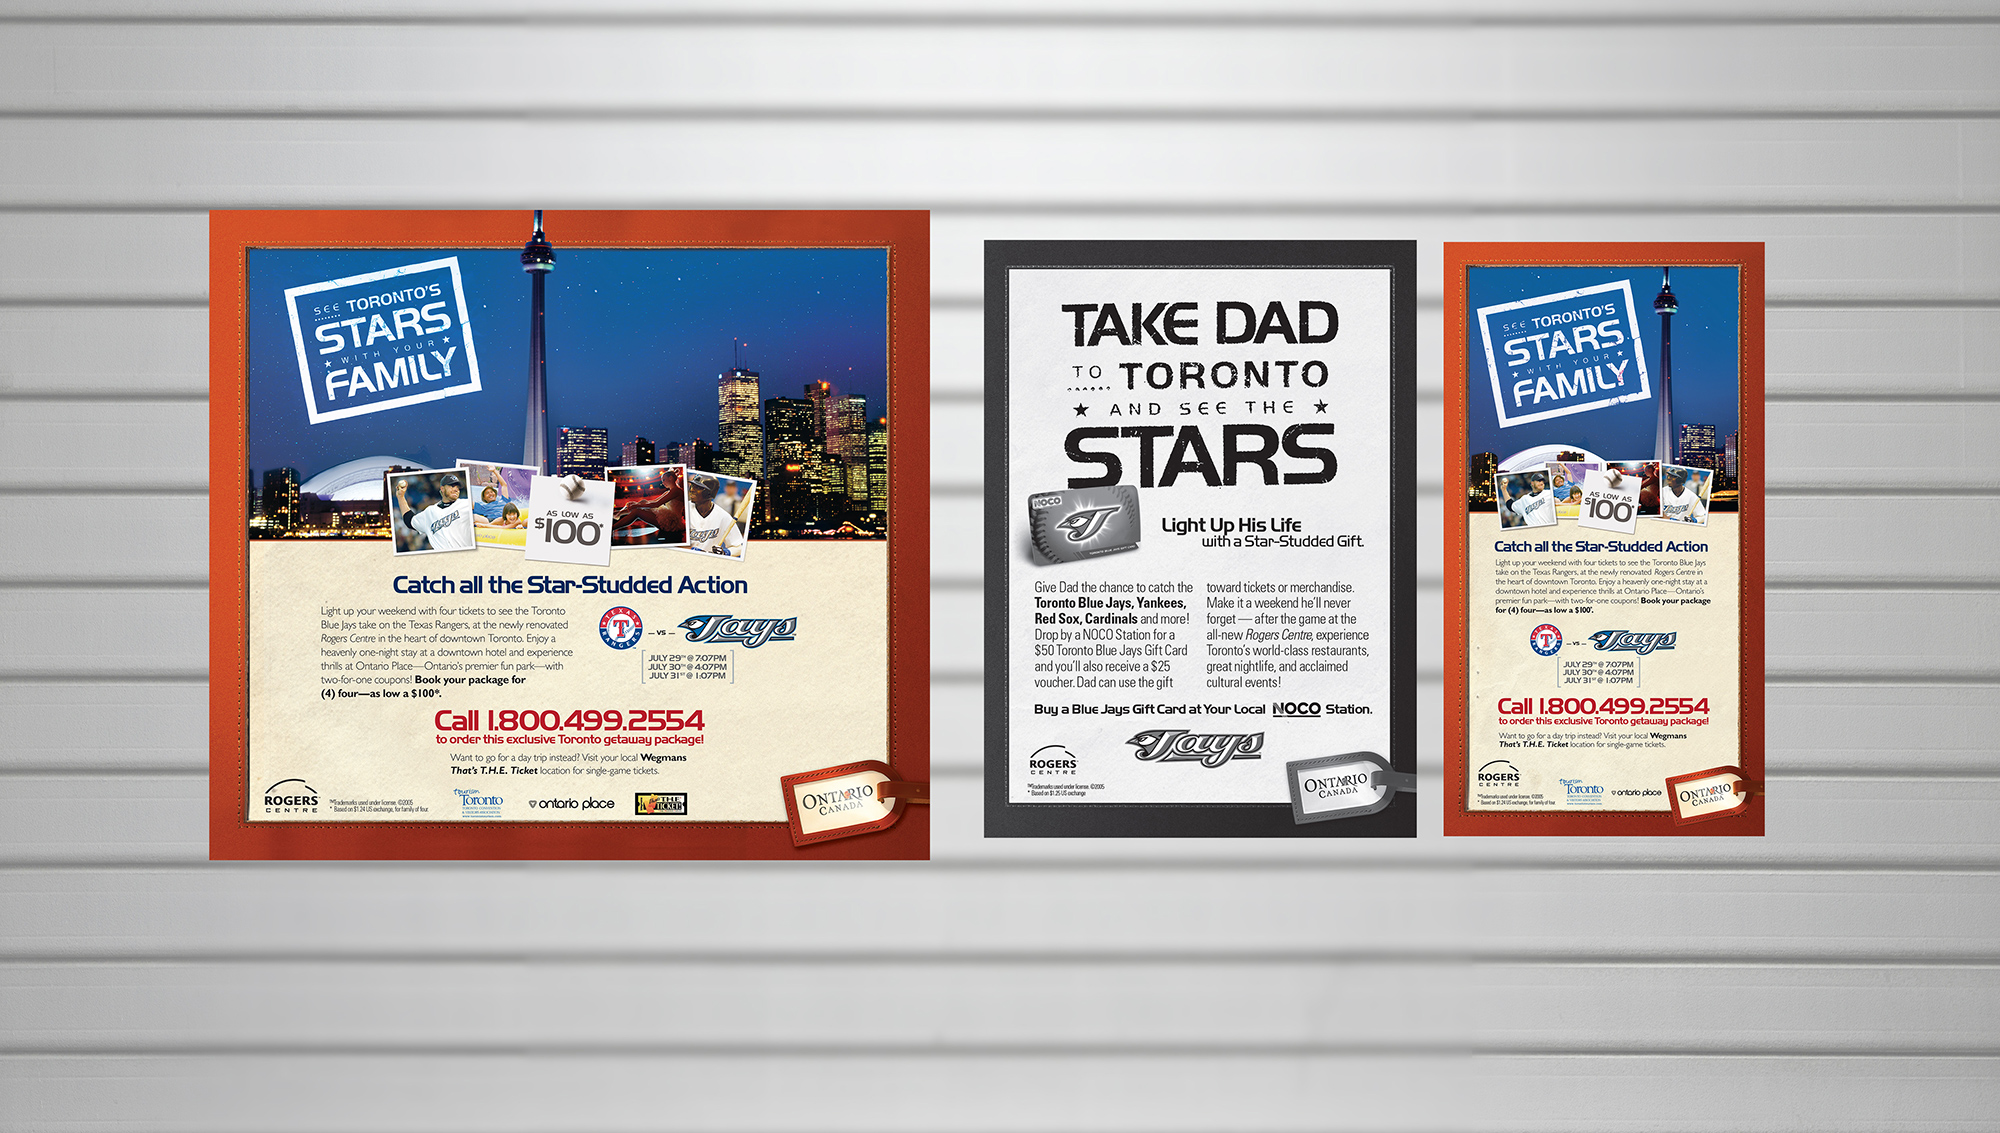 Ontario Tourism – See the Stars Campaign